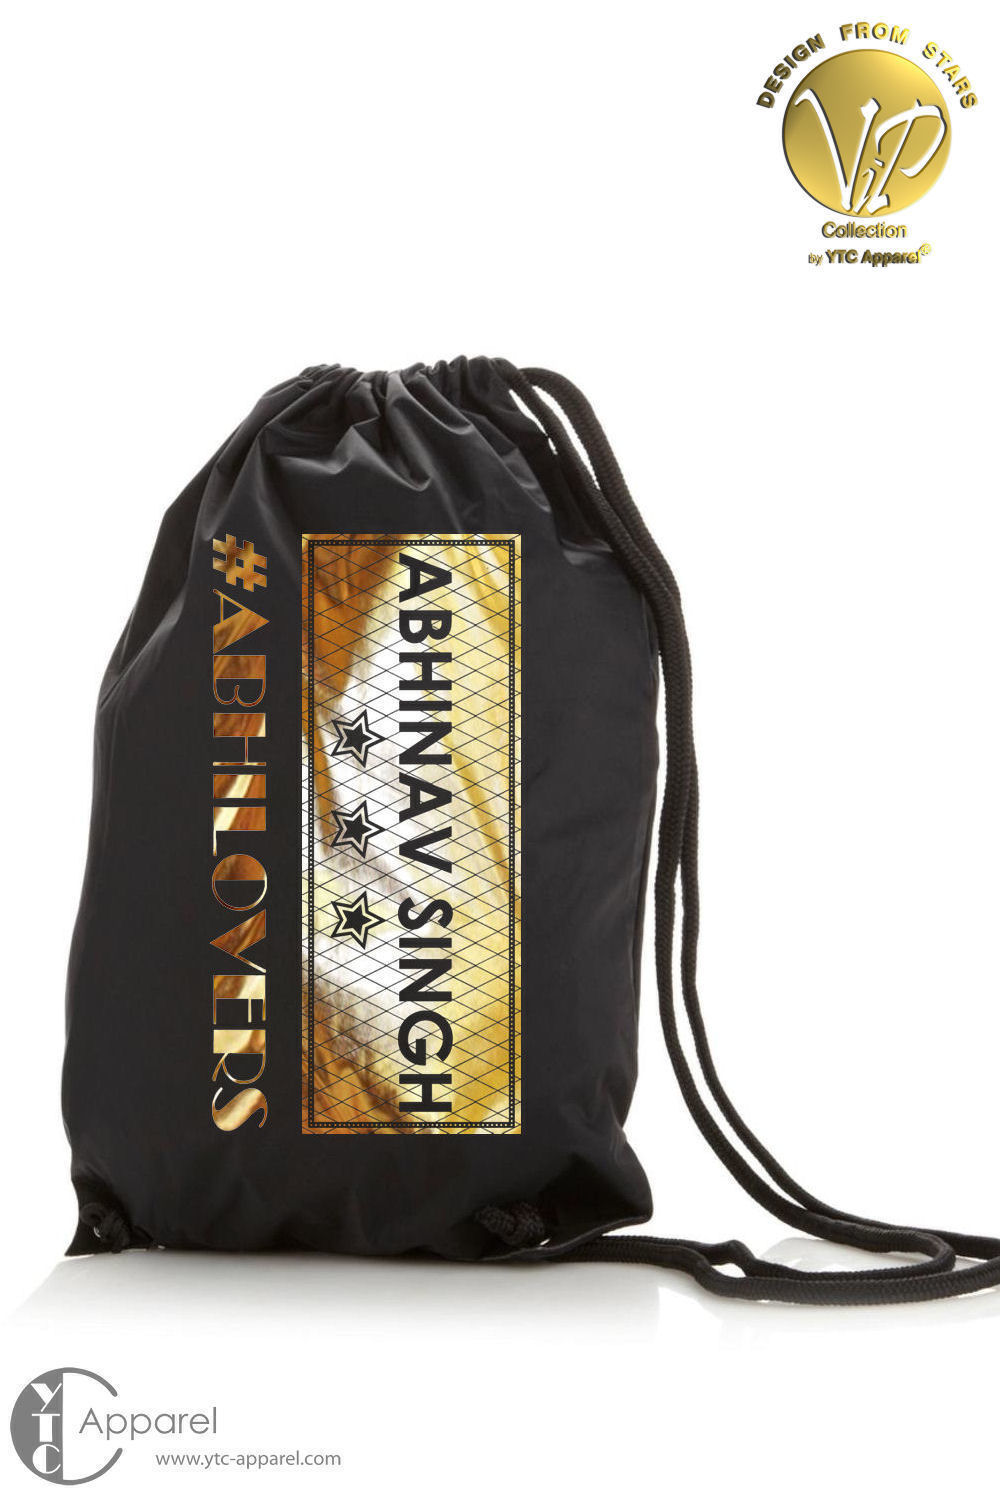 Abhinav Singh Gym Bag black (11 Liter)